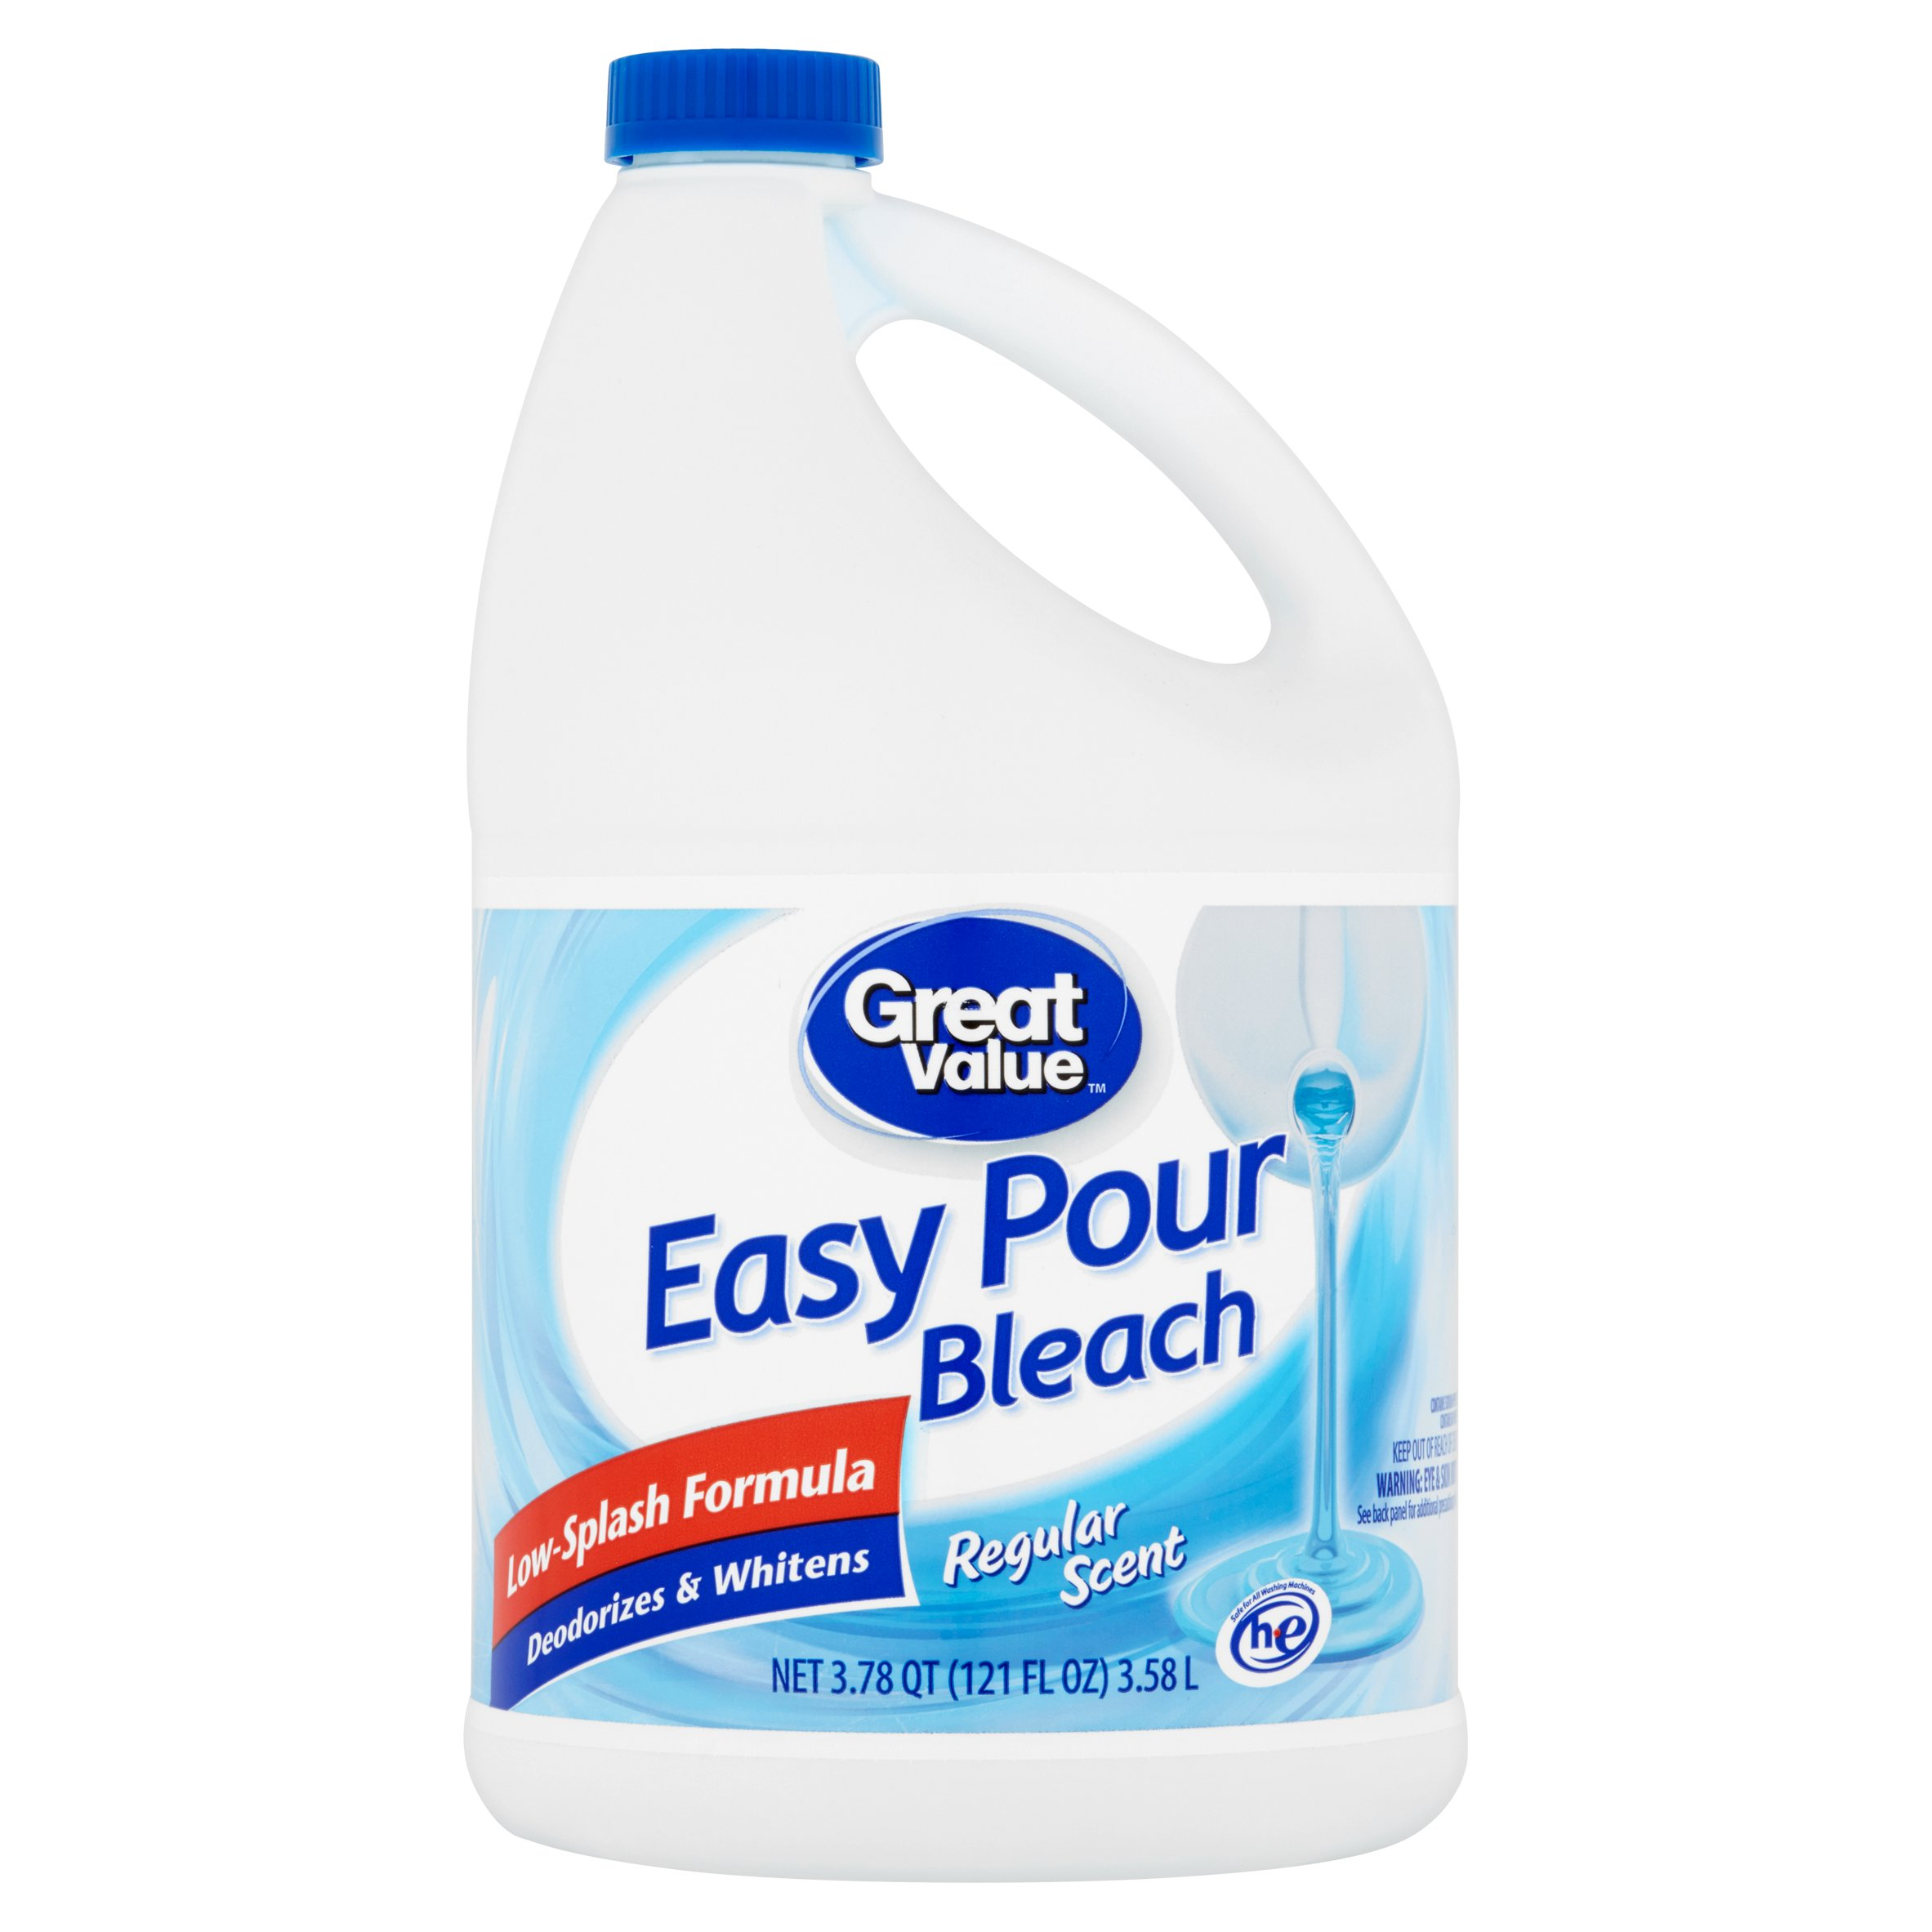 Great Value Easy Pour Bleach, Regular Scent, 121 fl oz